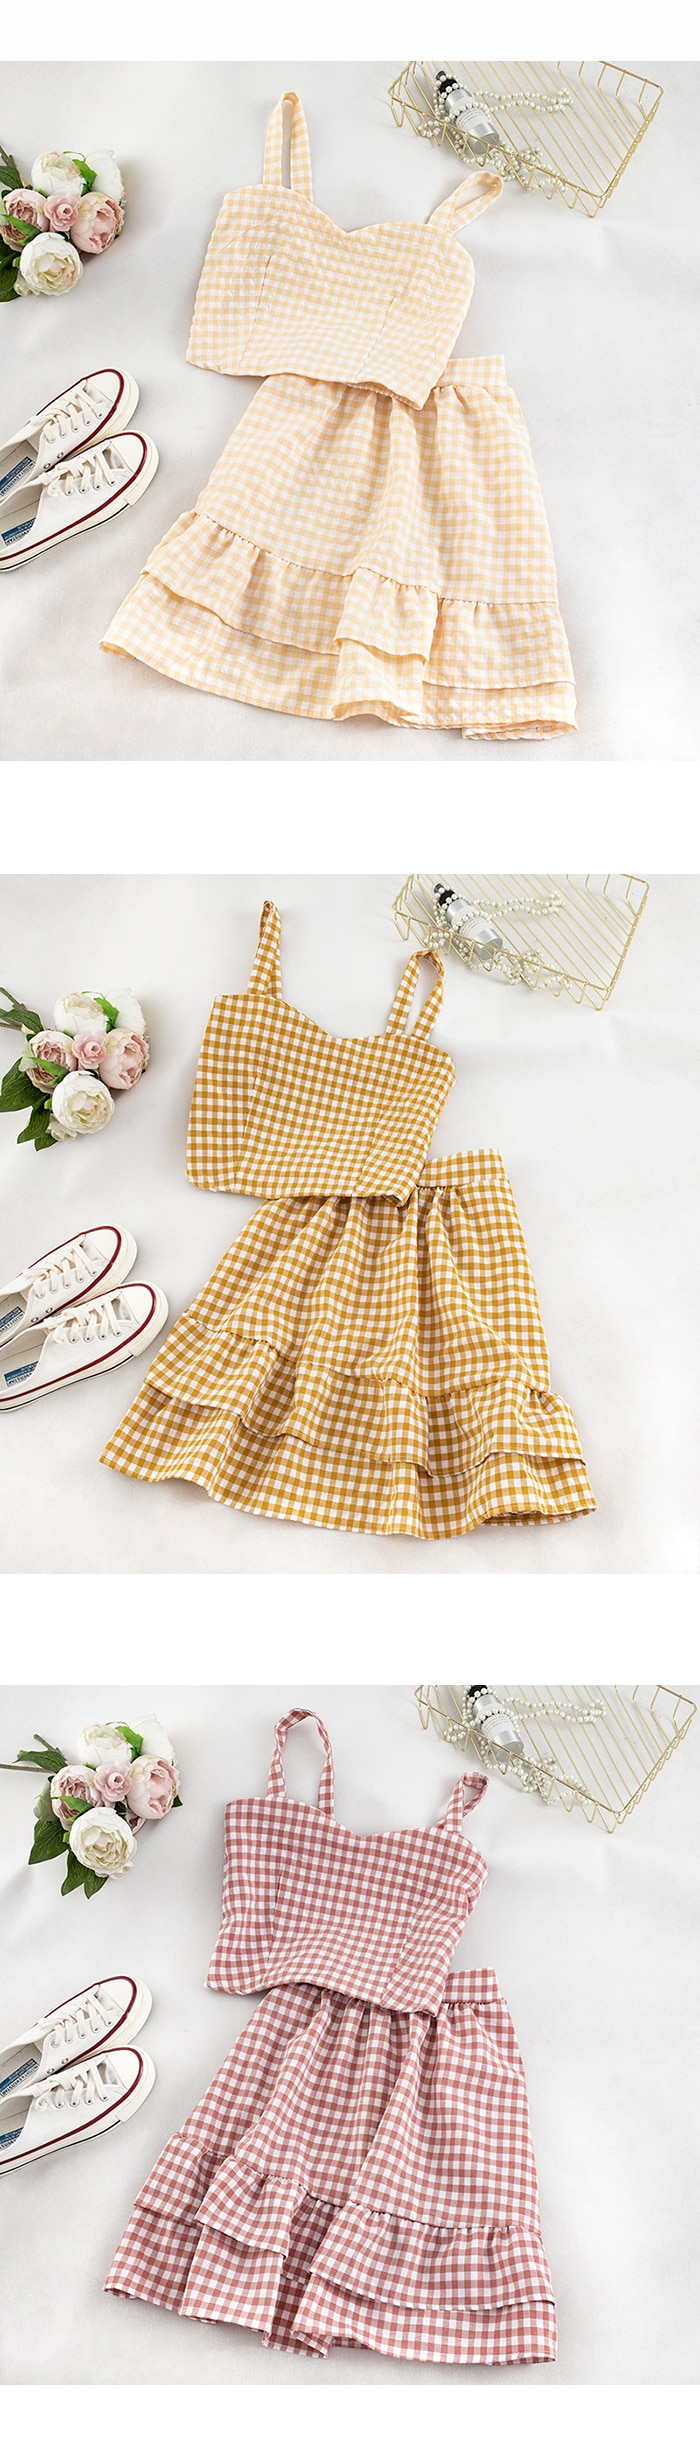 Two Pieces Sets Elastic Spaghetti Plaid Tops And Skirts